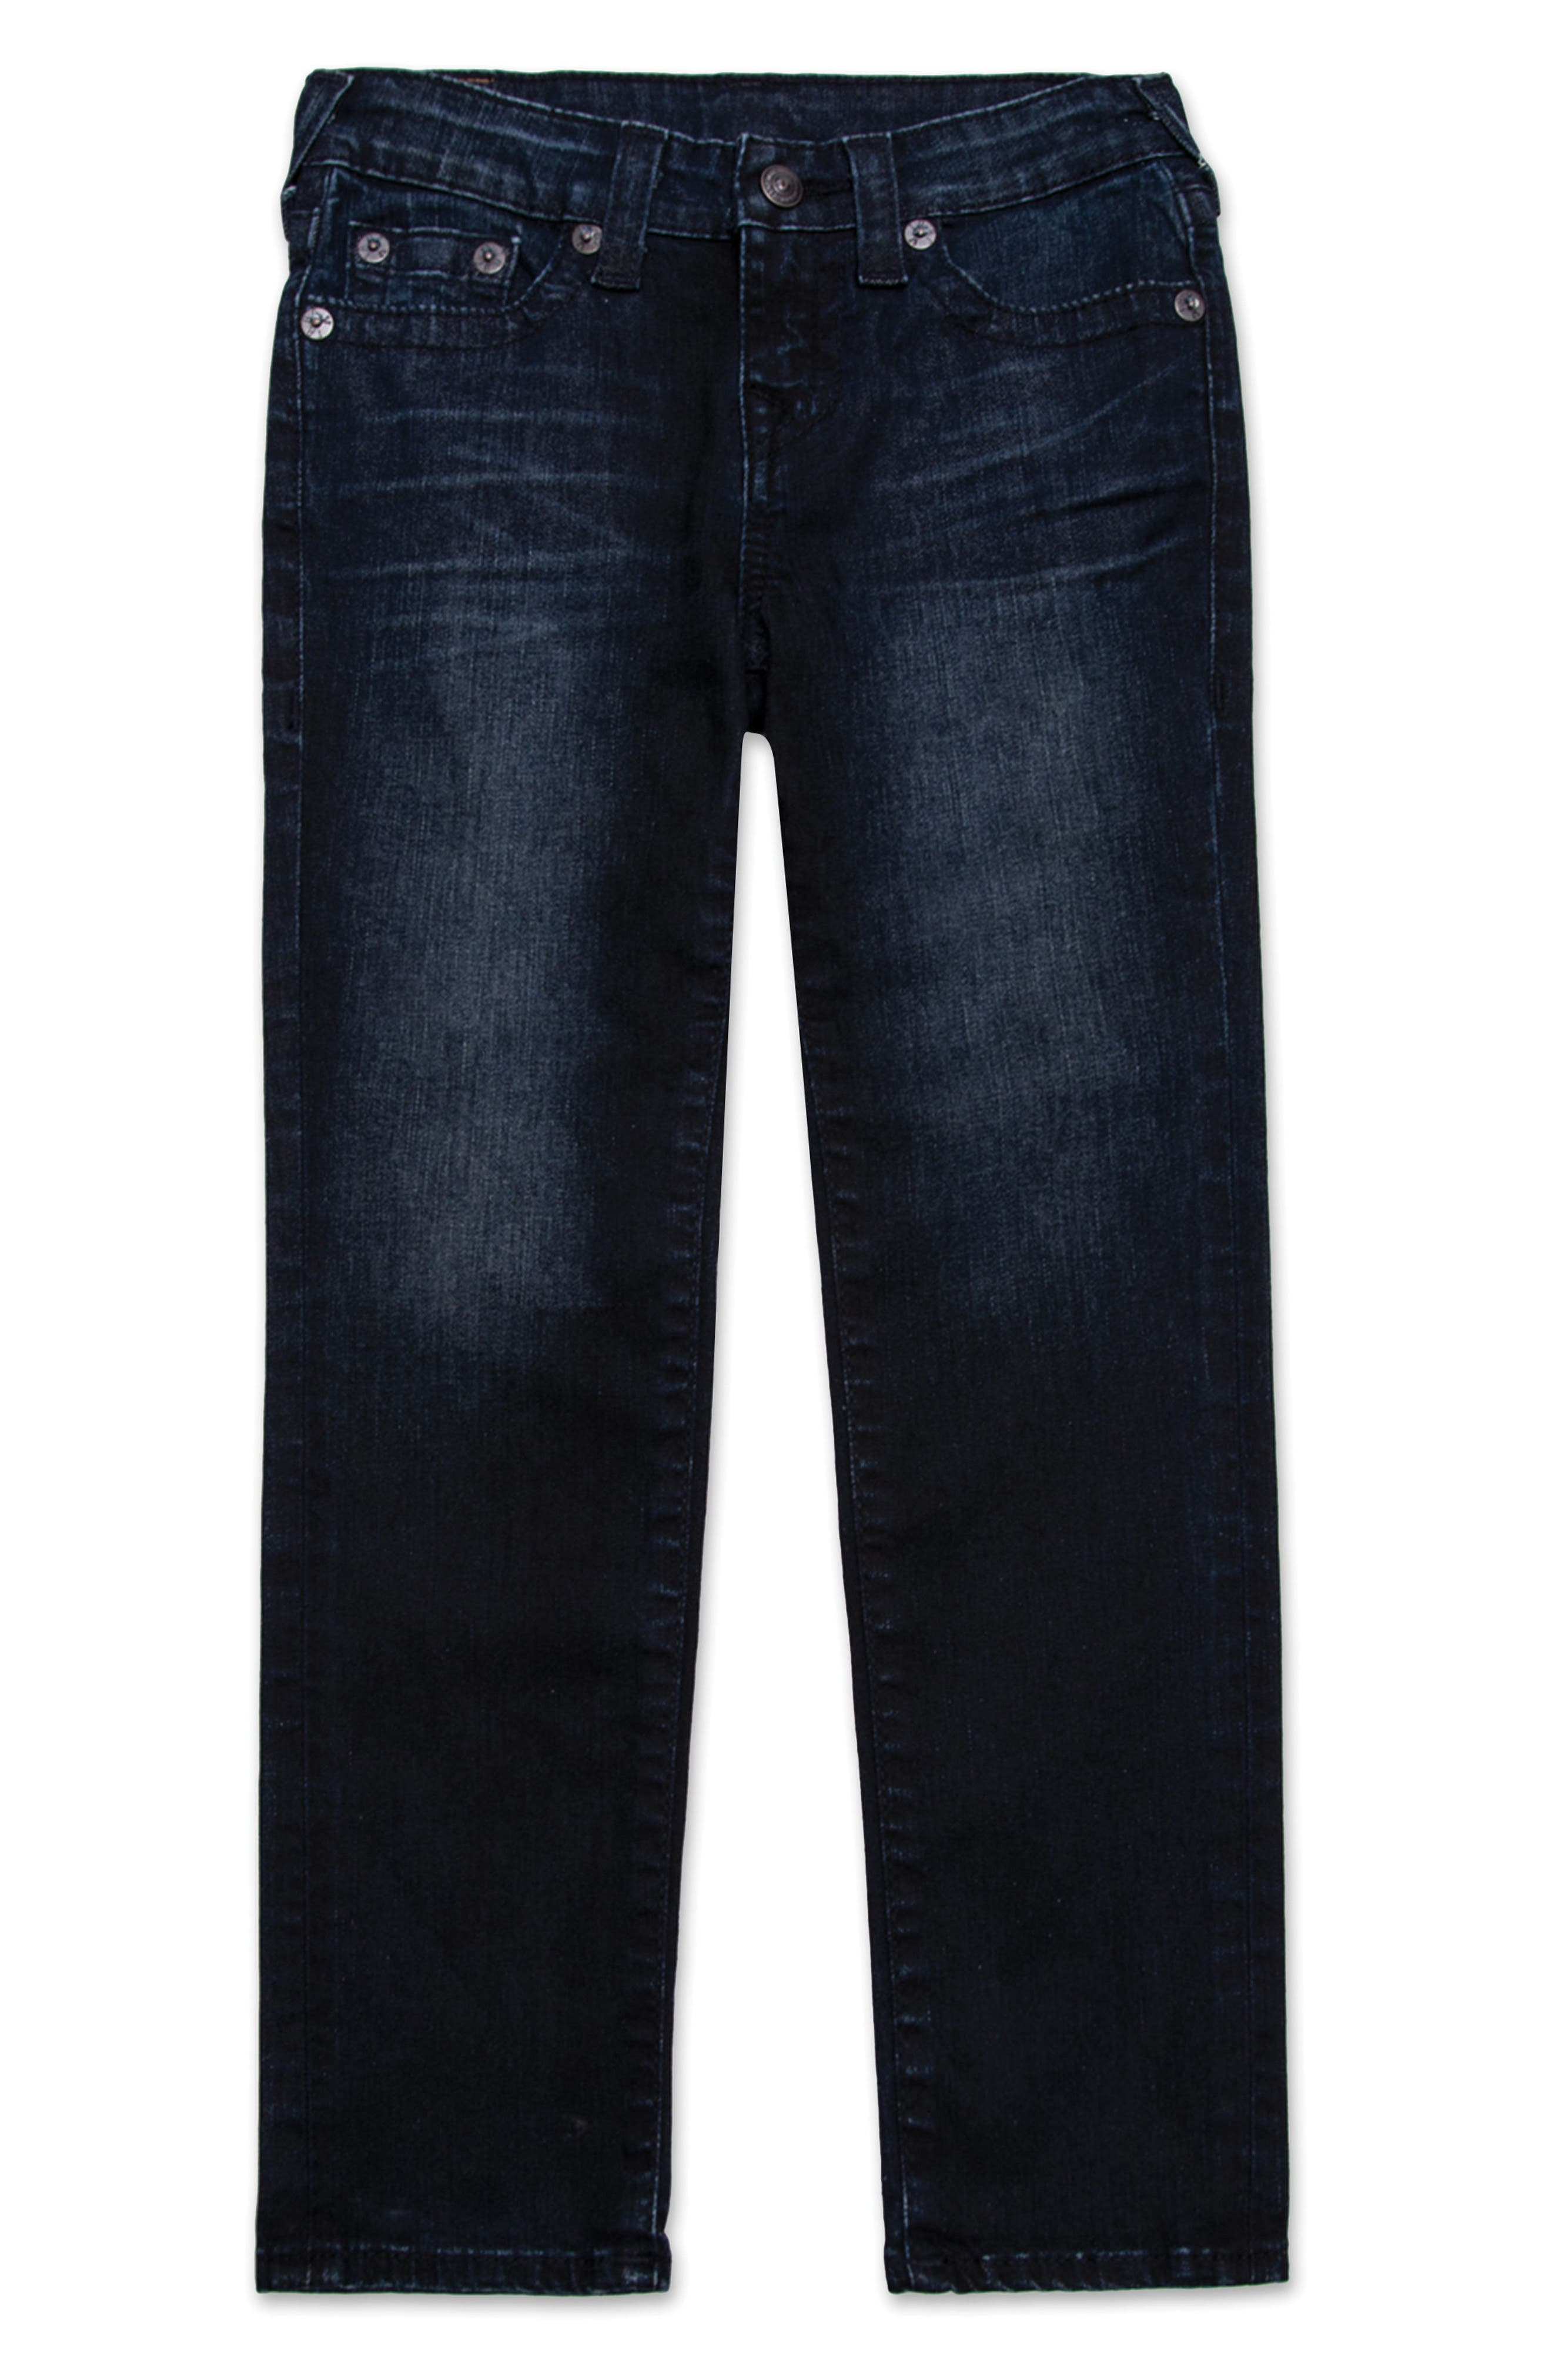 True Religion Brand Jeans Geno Relaxed Slim Fit Jeans (Big Boys)